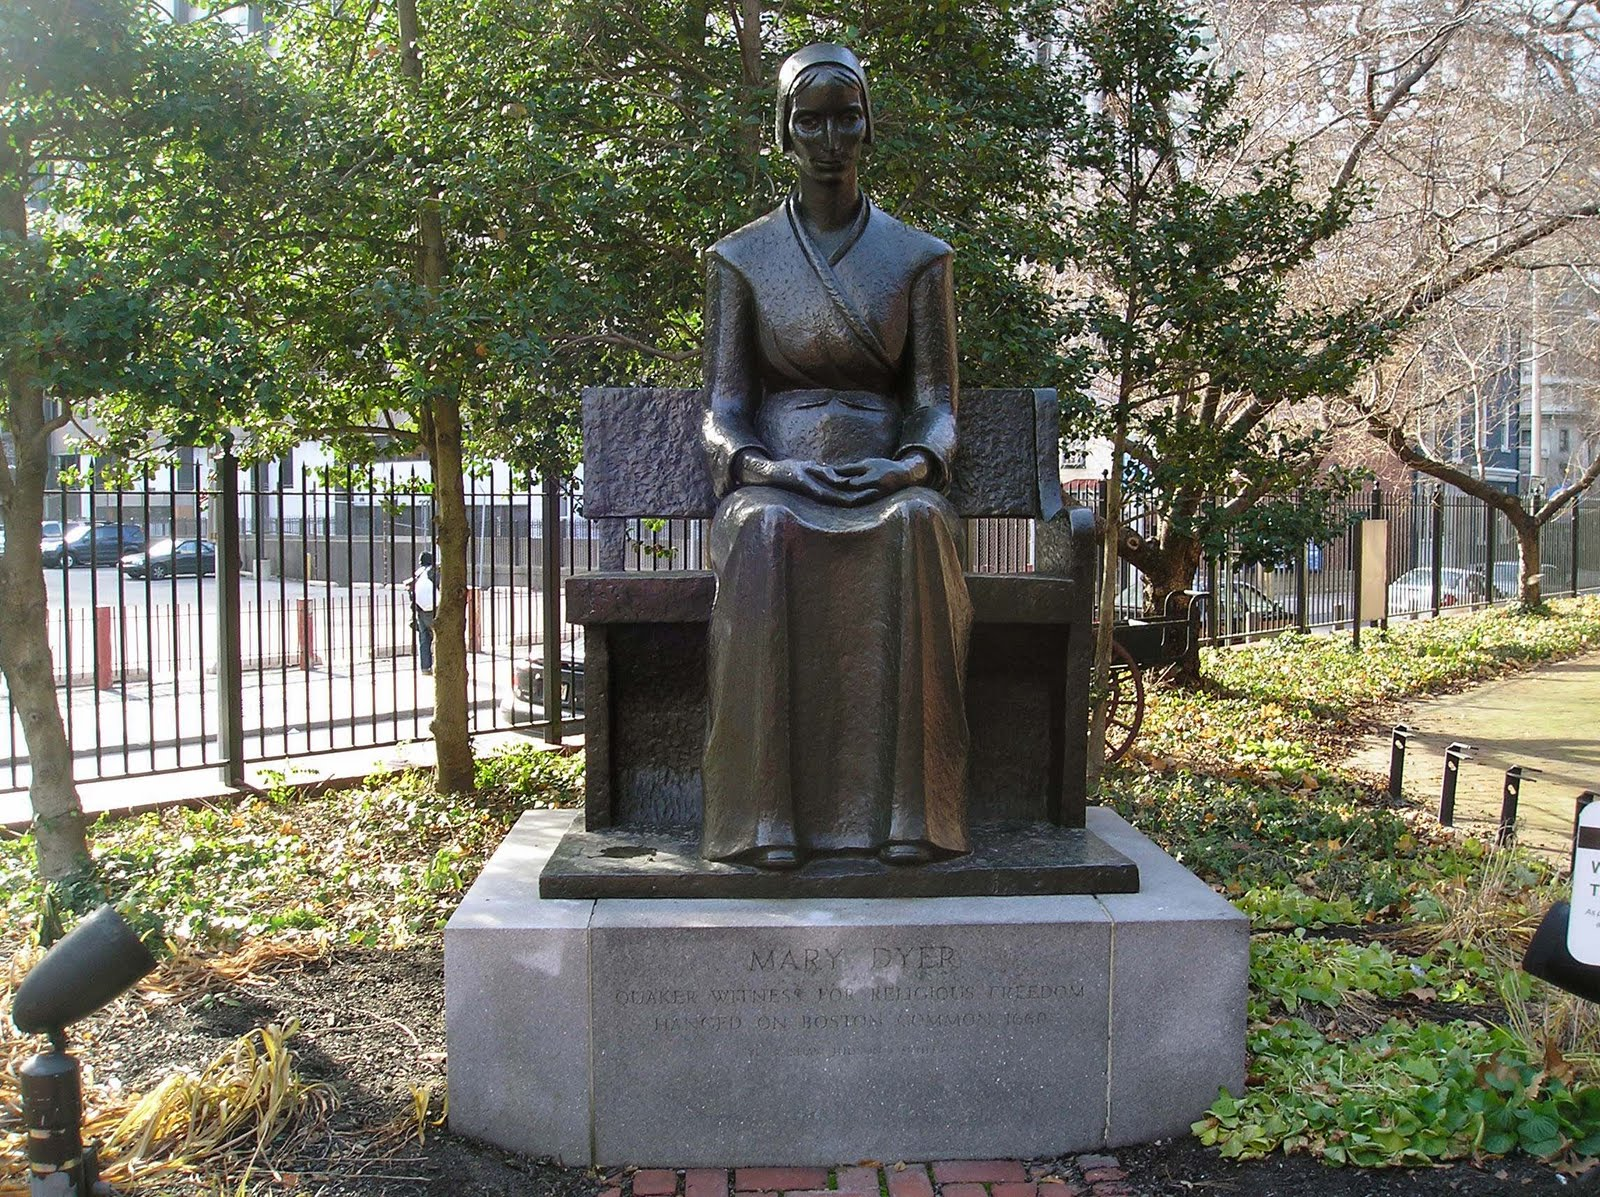 mary dyer Mary dyer mary barrett dyer (1611 – 1660) was an english puritan turned quaker who was hanged in boston, massachusetts for repeatedly defying a law banning quakers from the colony.